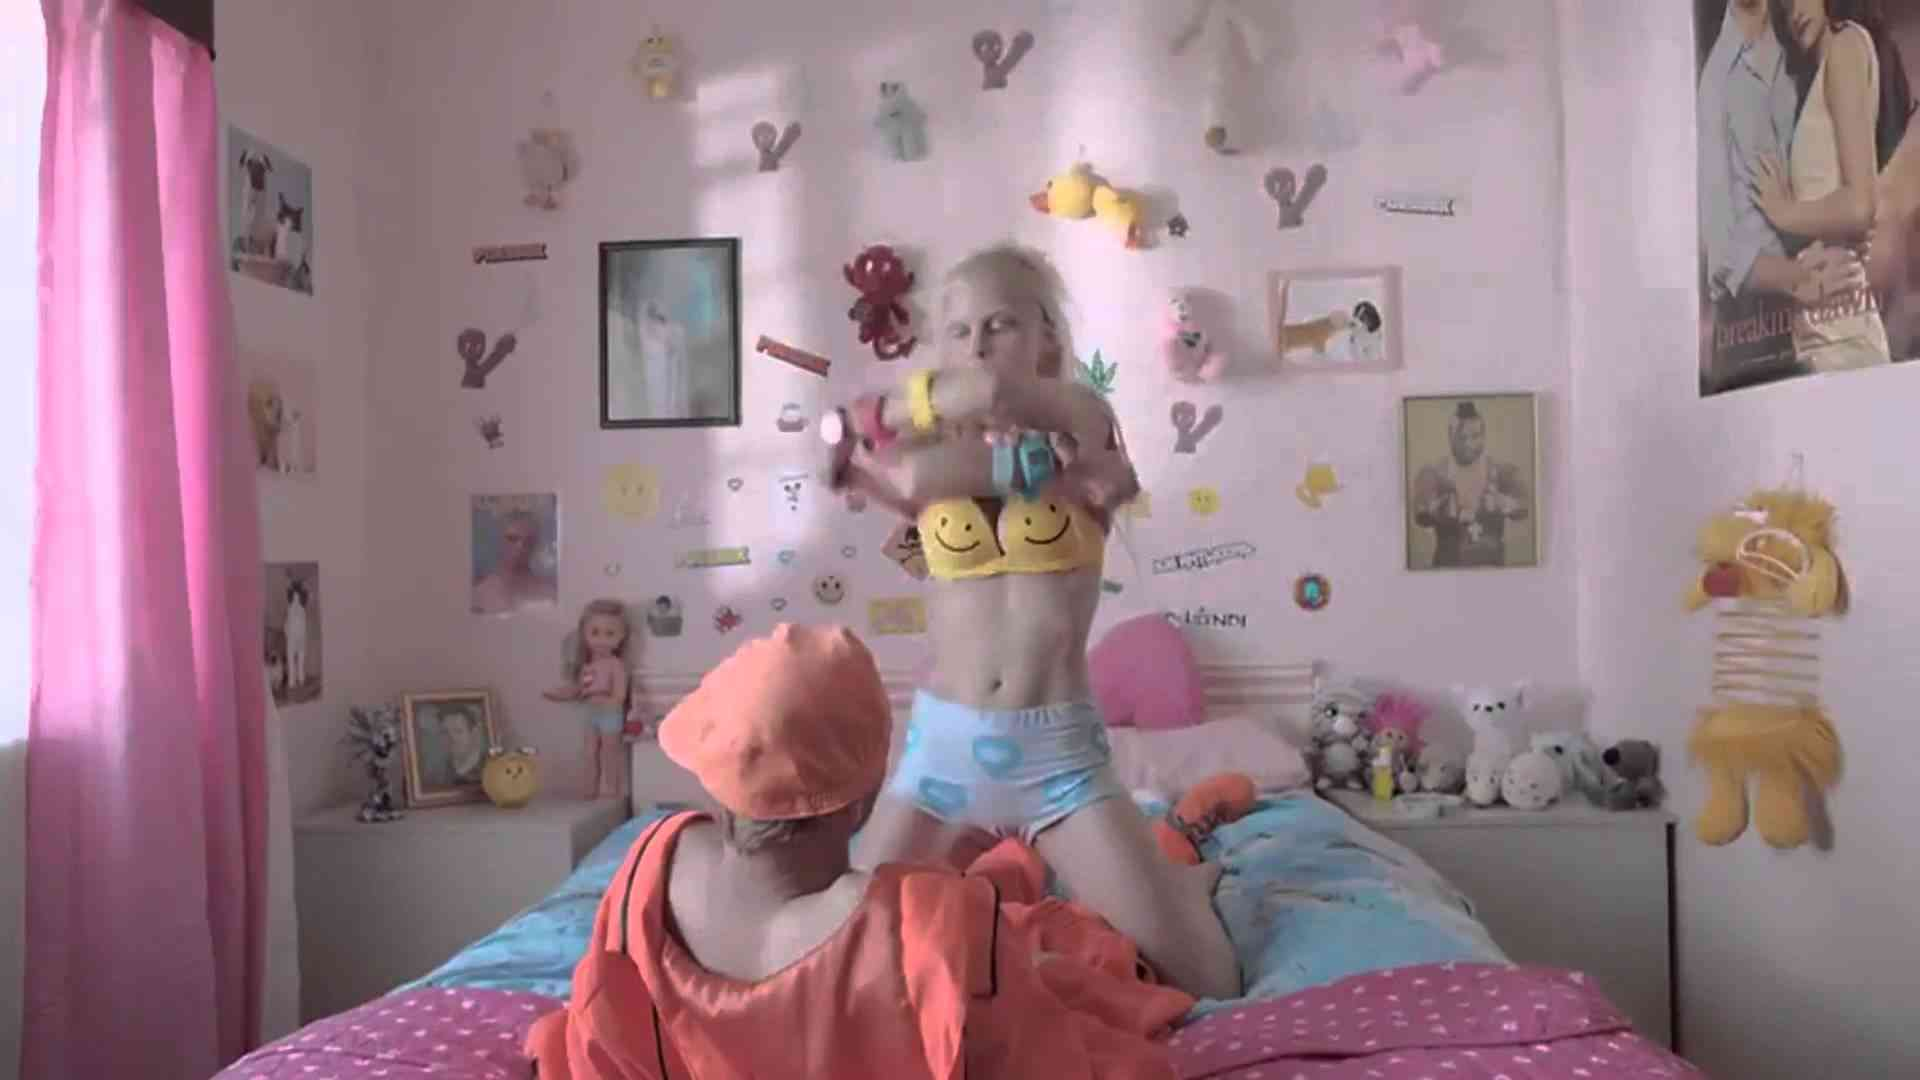 DIE ANTWOORD - BABY'S ON FIRE (OFFICIAL) - YouTube - YouTube